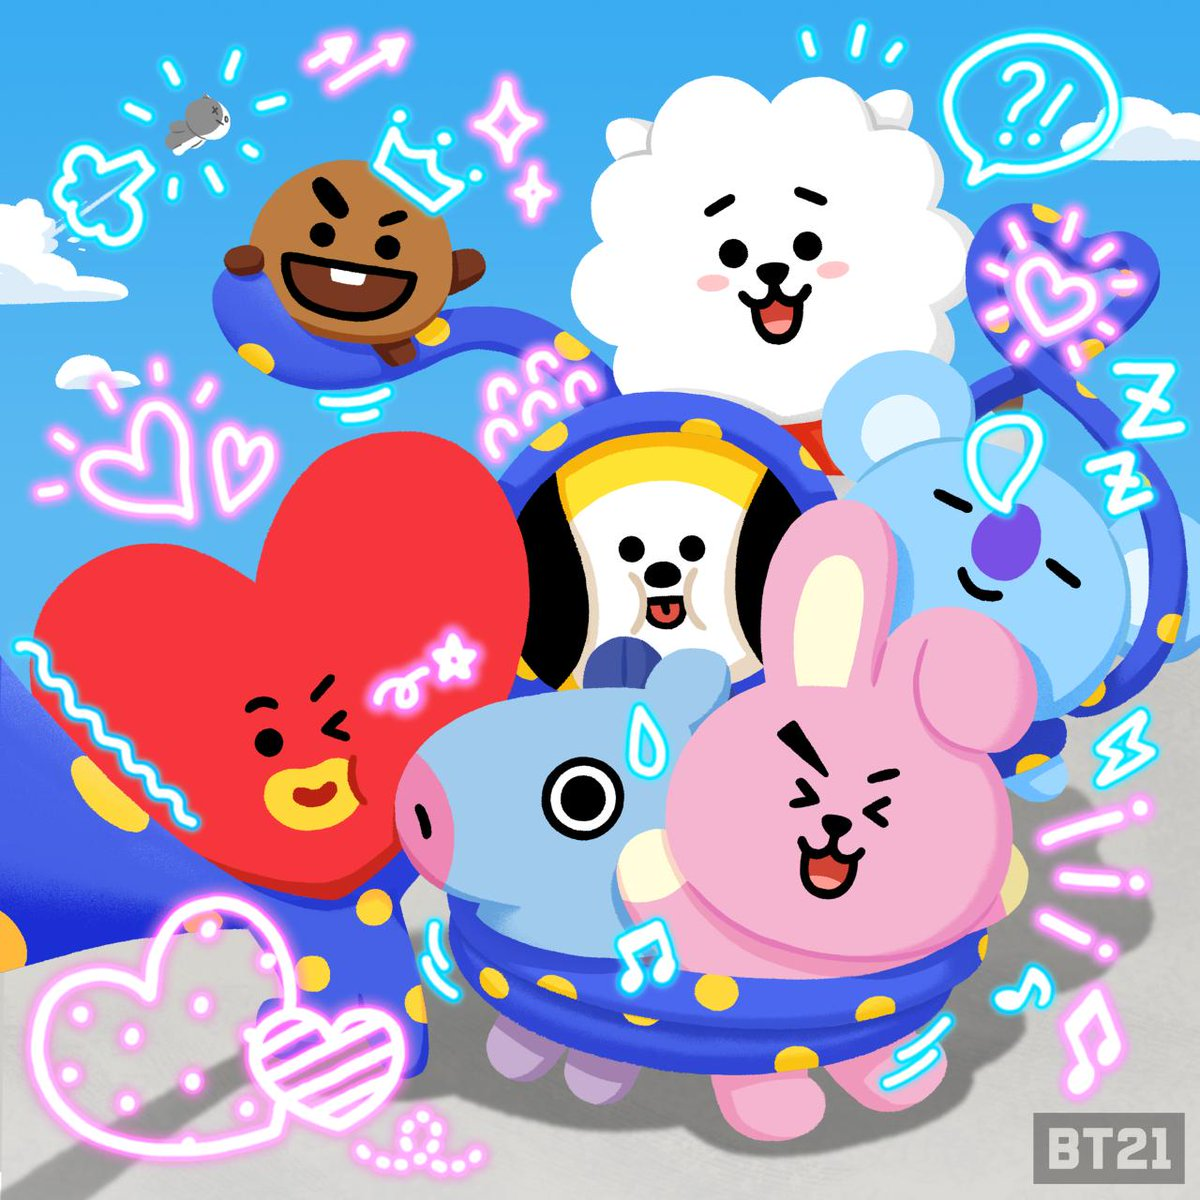 Click! 📸 We are all here ✌️ #BT21 #selfi...